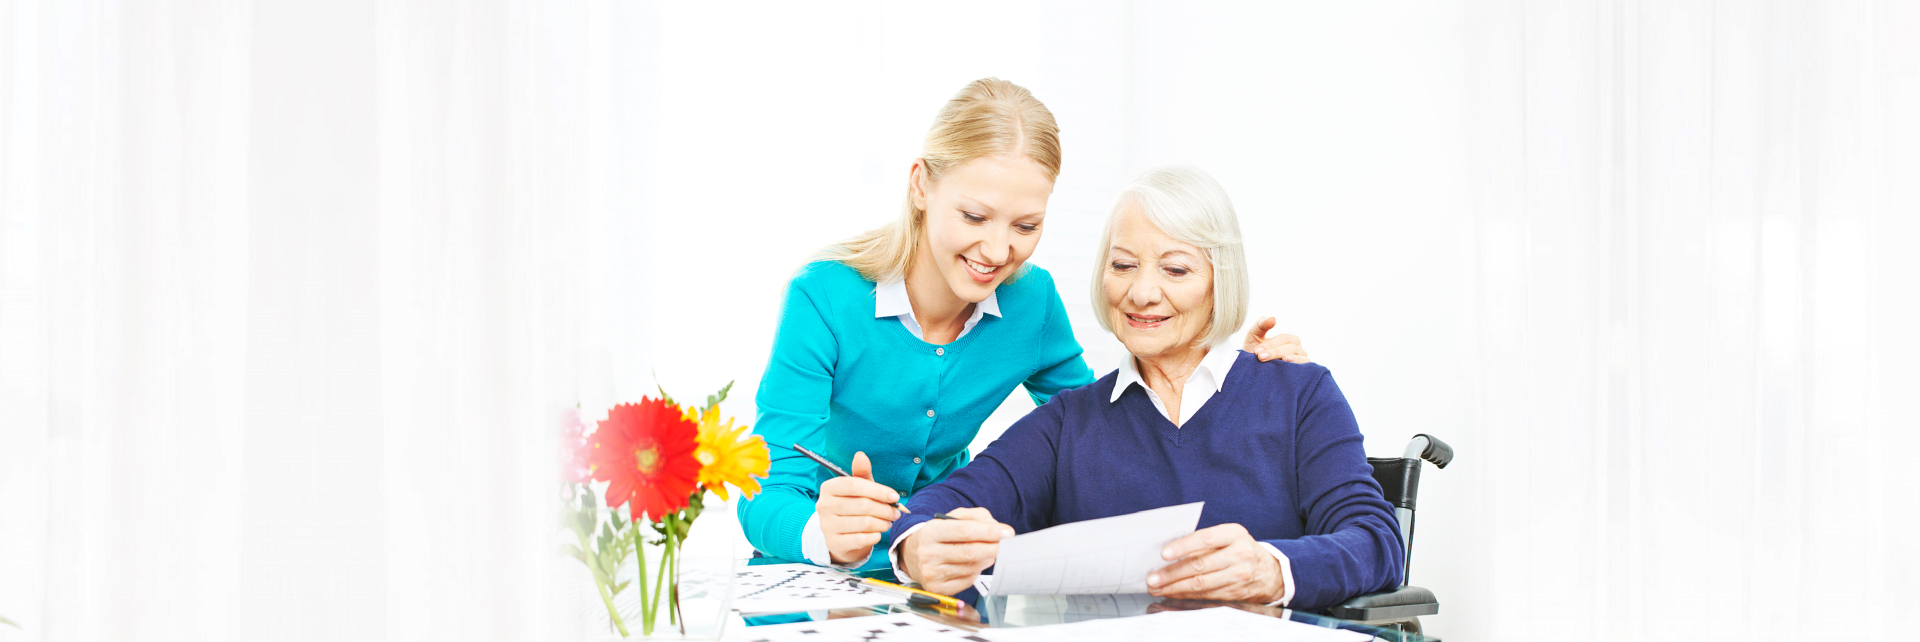 caregiver assisting senior woman in writing